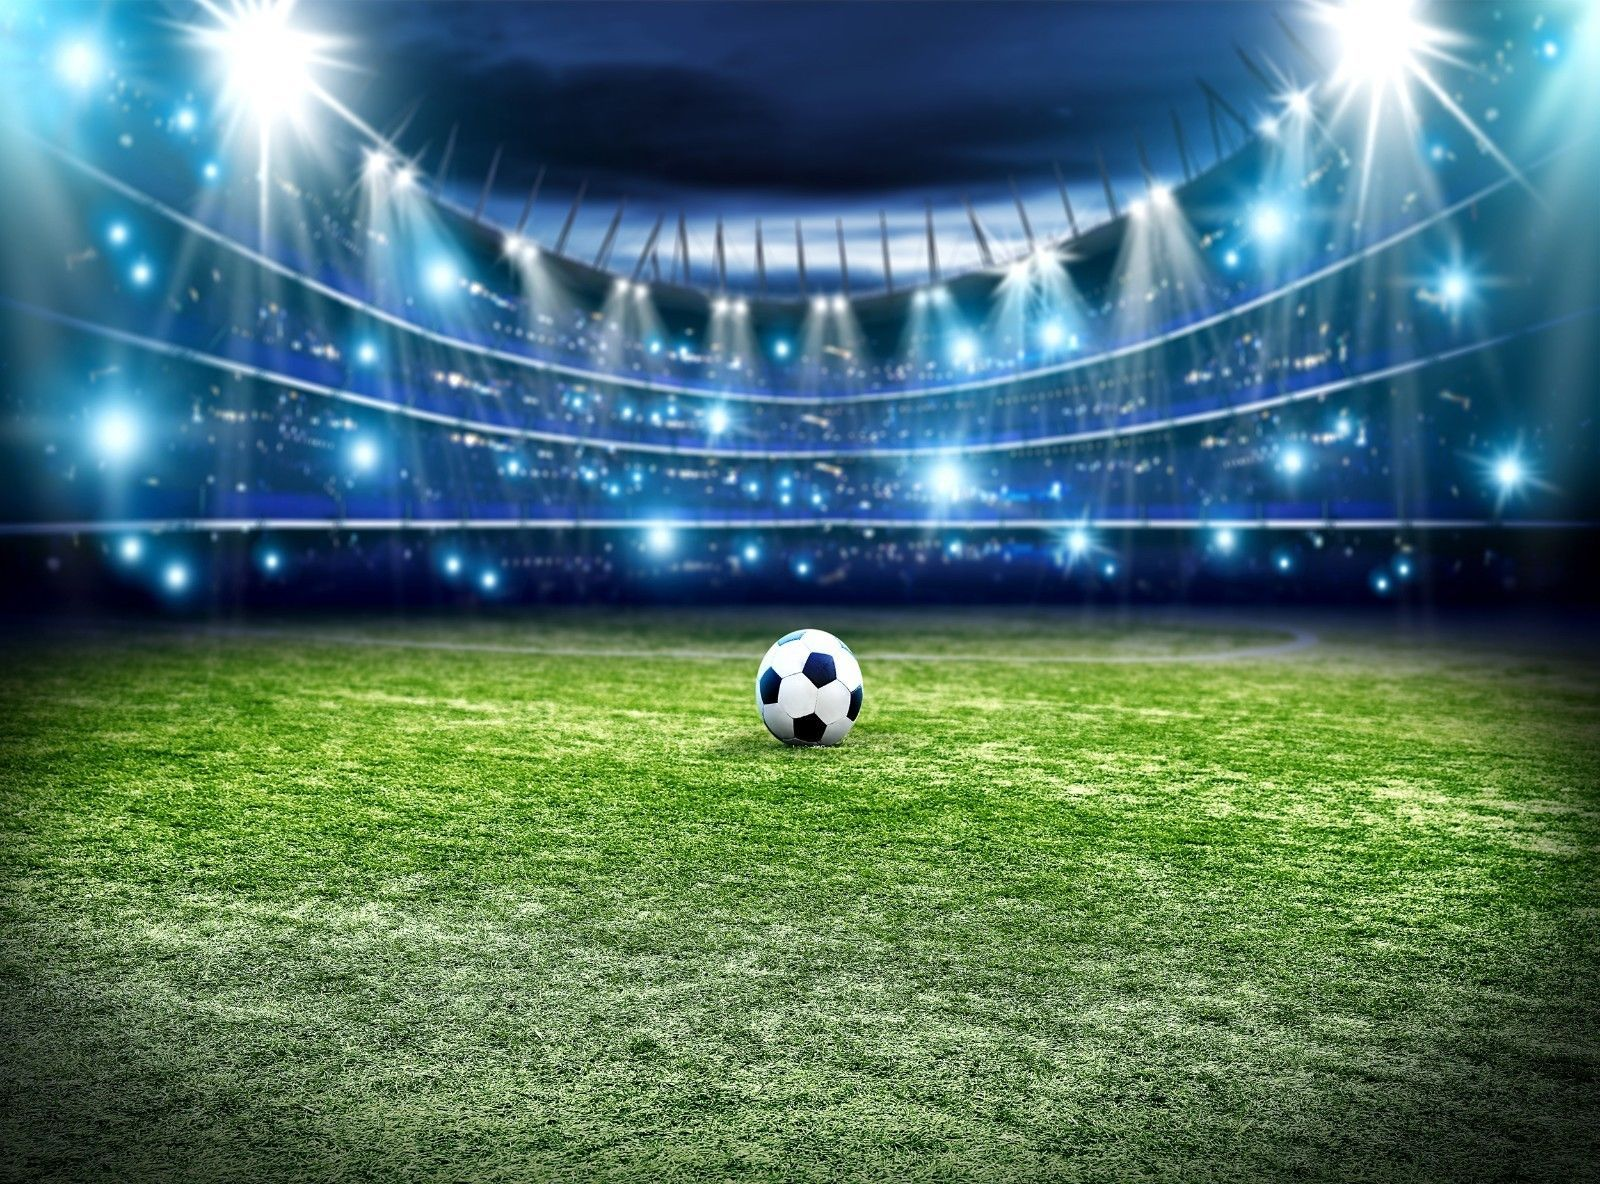 Football Pitch Wall Mural Wallpaper: Details About Football Pitch Photo Wallpaper Wall Mural